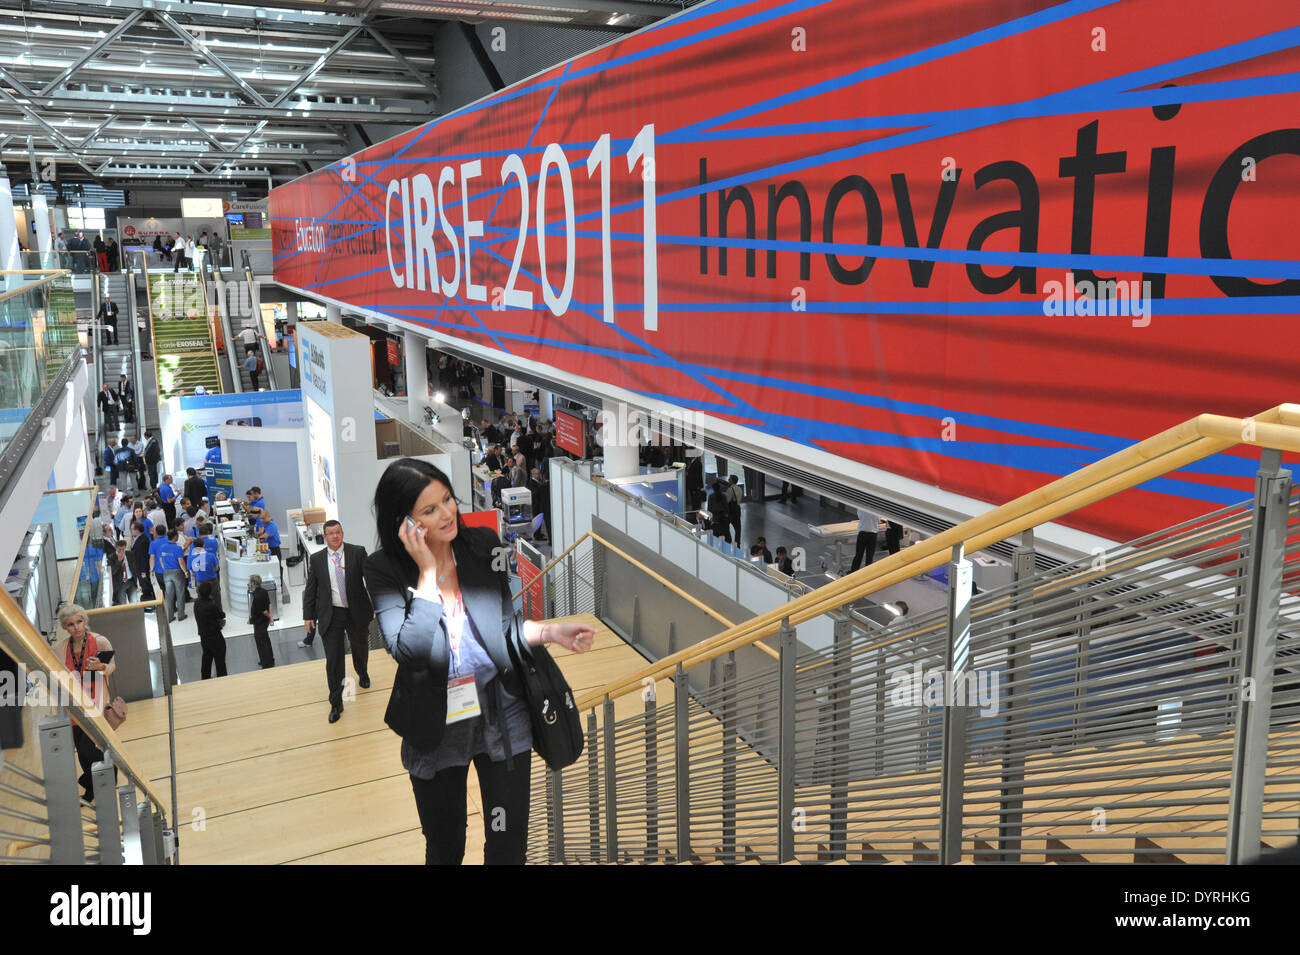 'Cirse Innovation' exhibition at the Radiology Congress in Munich, 201 - Stock Image